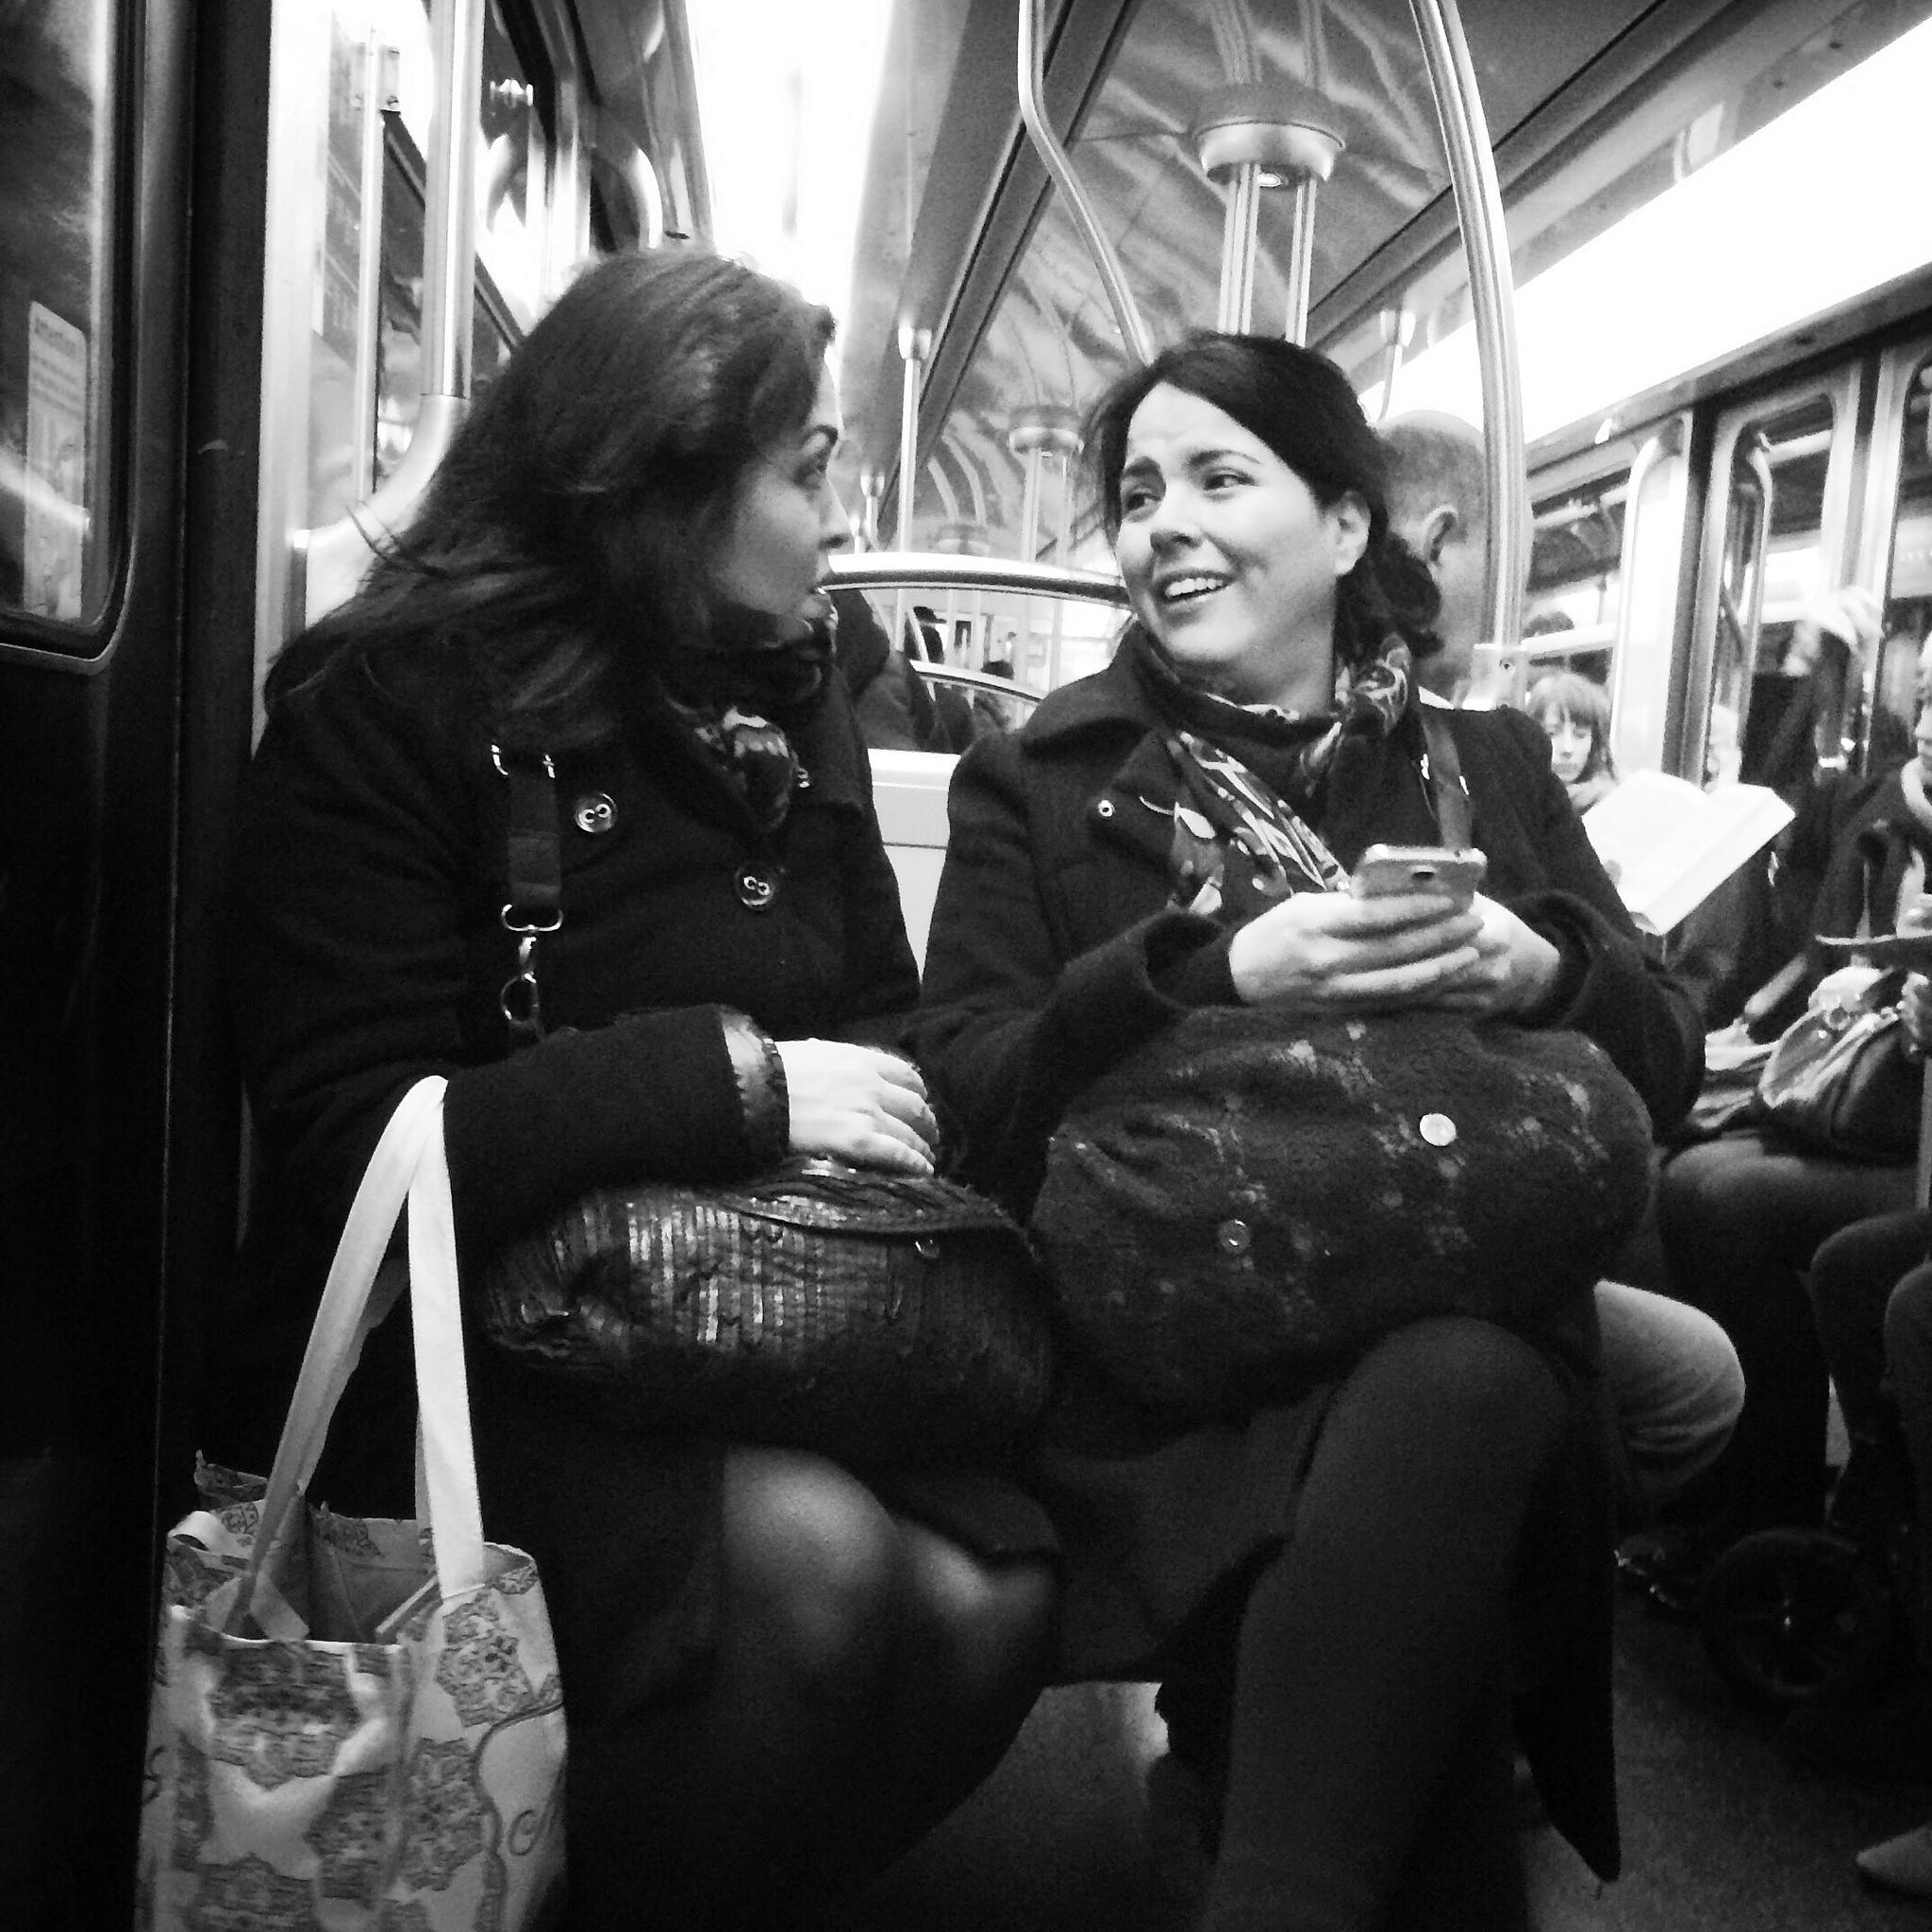 Metro Gossip by parisfind